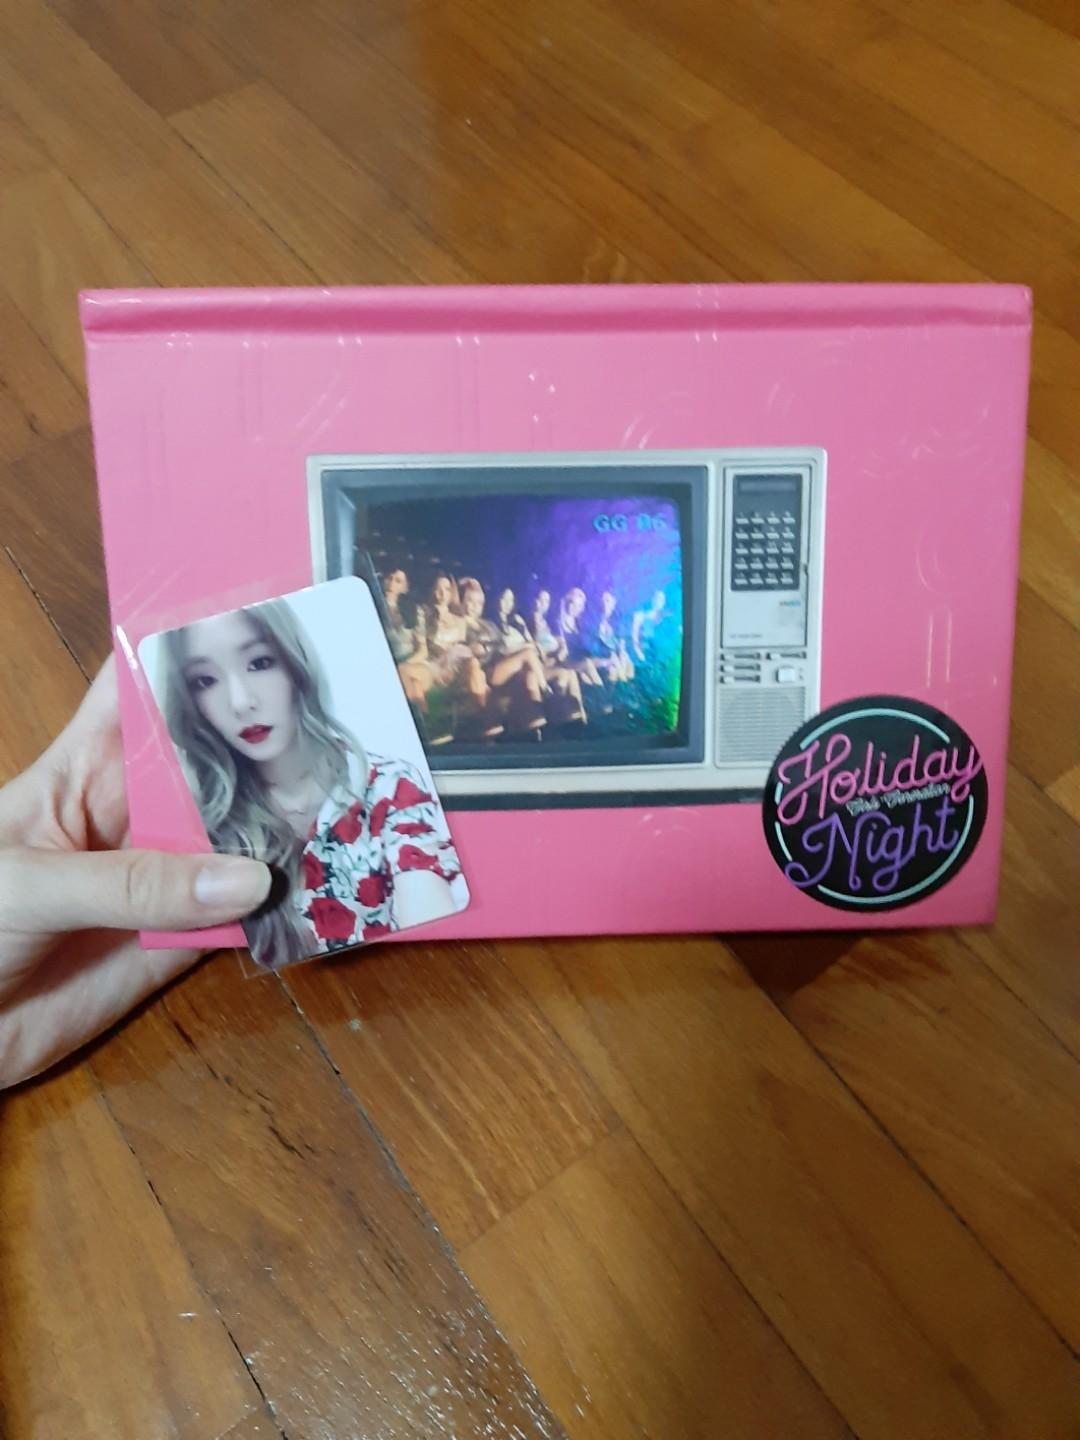 [WTS] SNSD Holiday Night Album with Tiffany Photocard